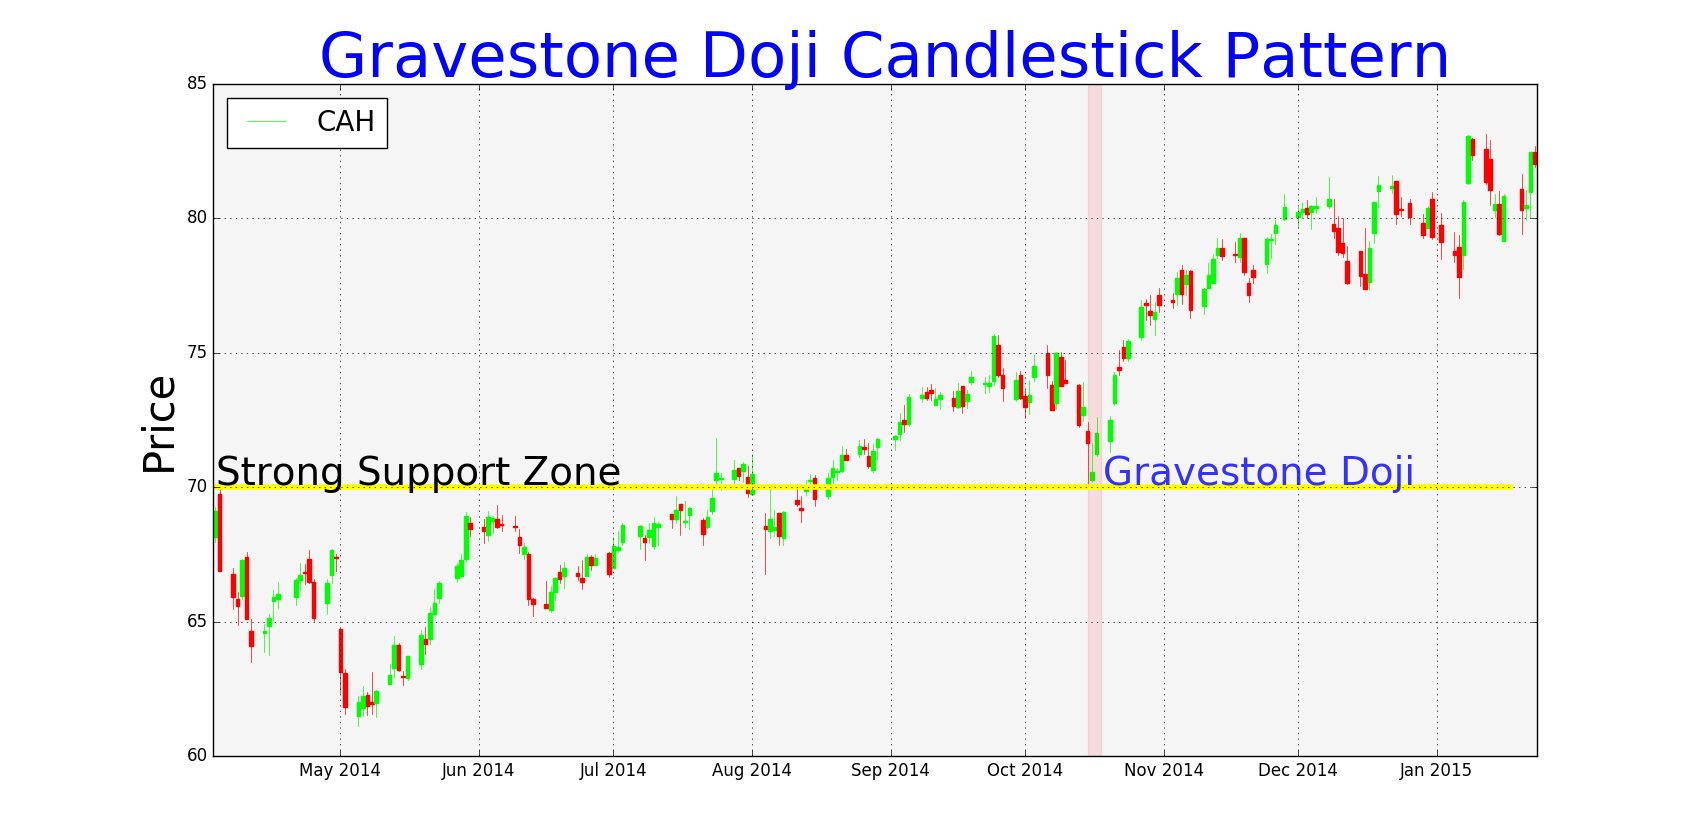 Gravestone Doji at Support Zone,Gravestone Doji